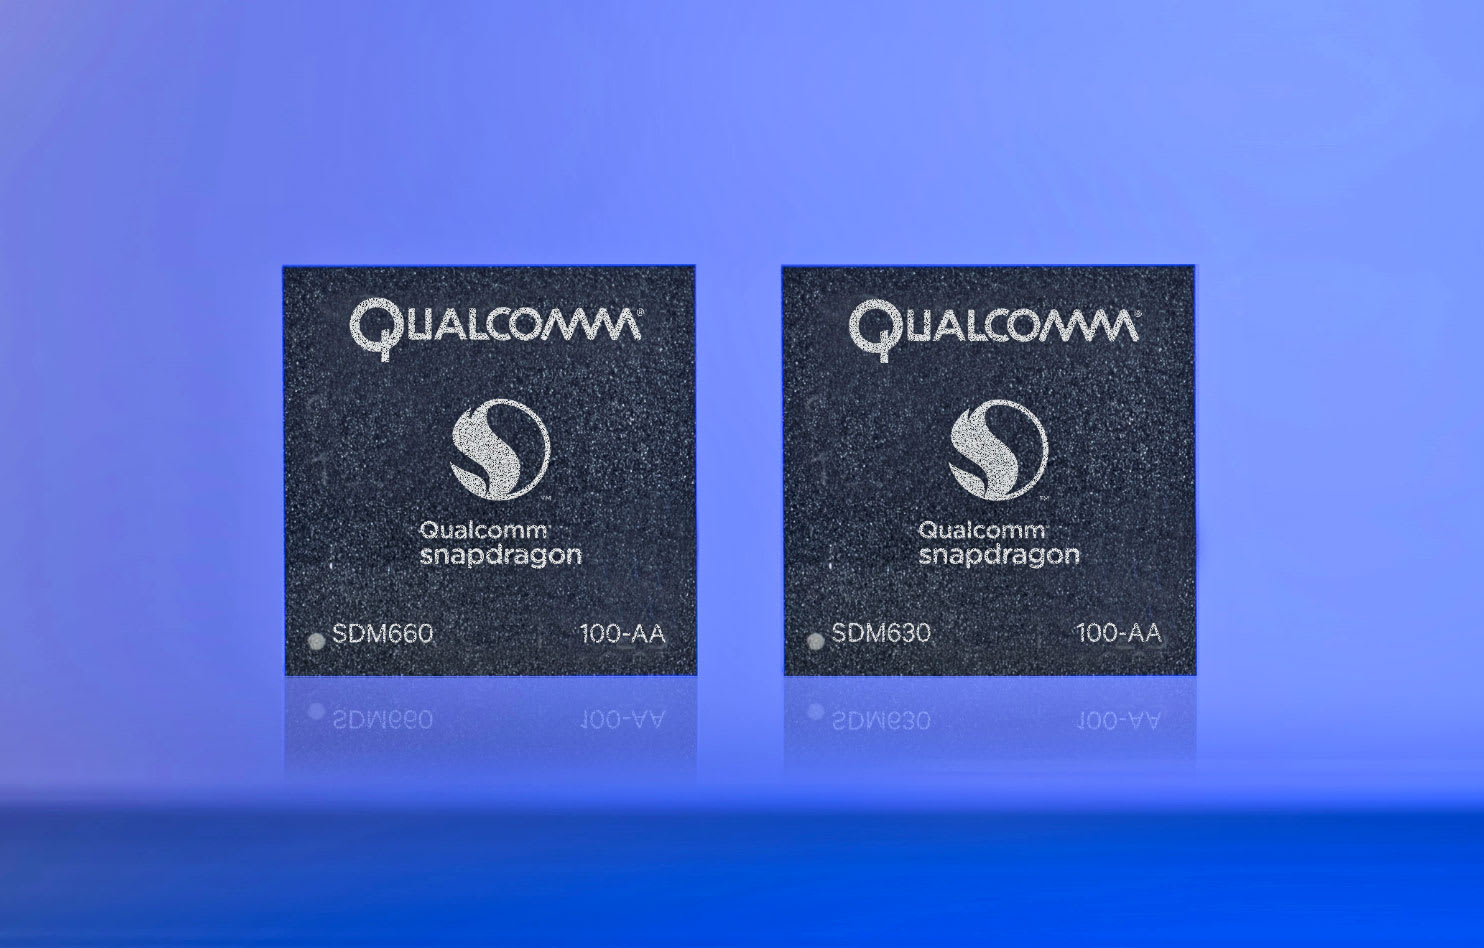 Qualcomm's new mid-tier mobile chips are good news for gaming